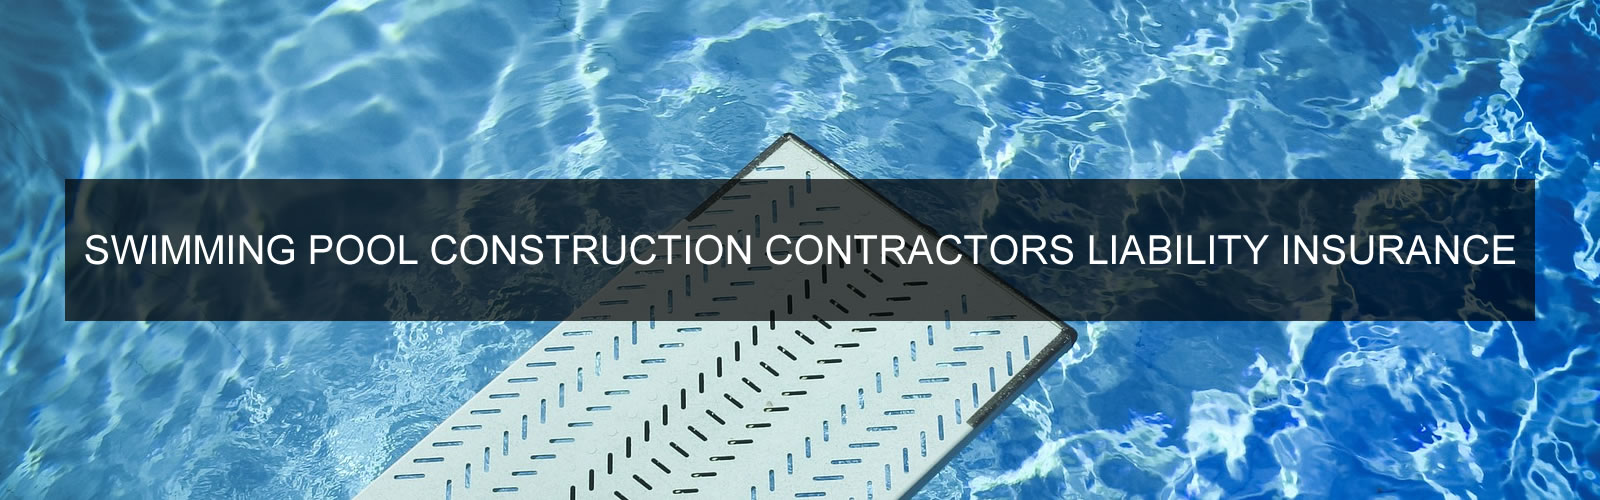 Swimming Pool Construction Contractors Liability Insurance Policy Centre Insurance